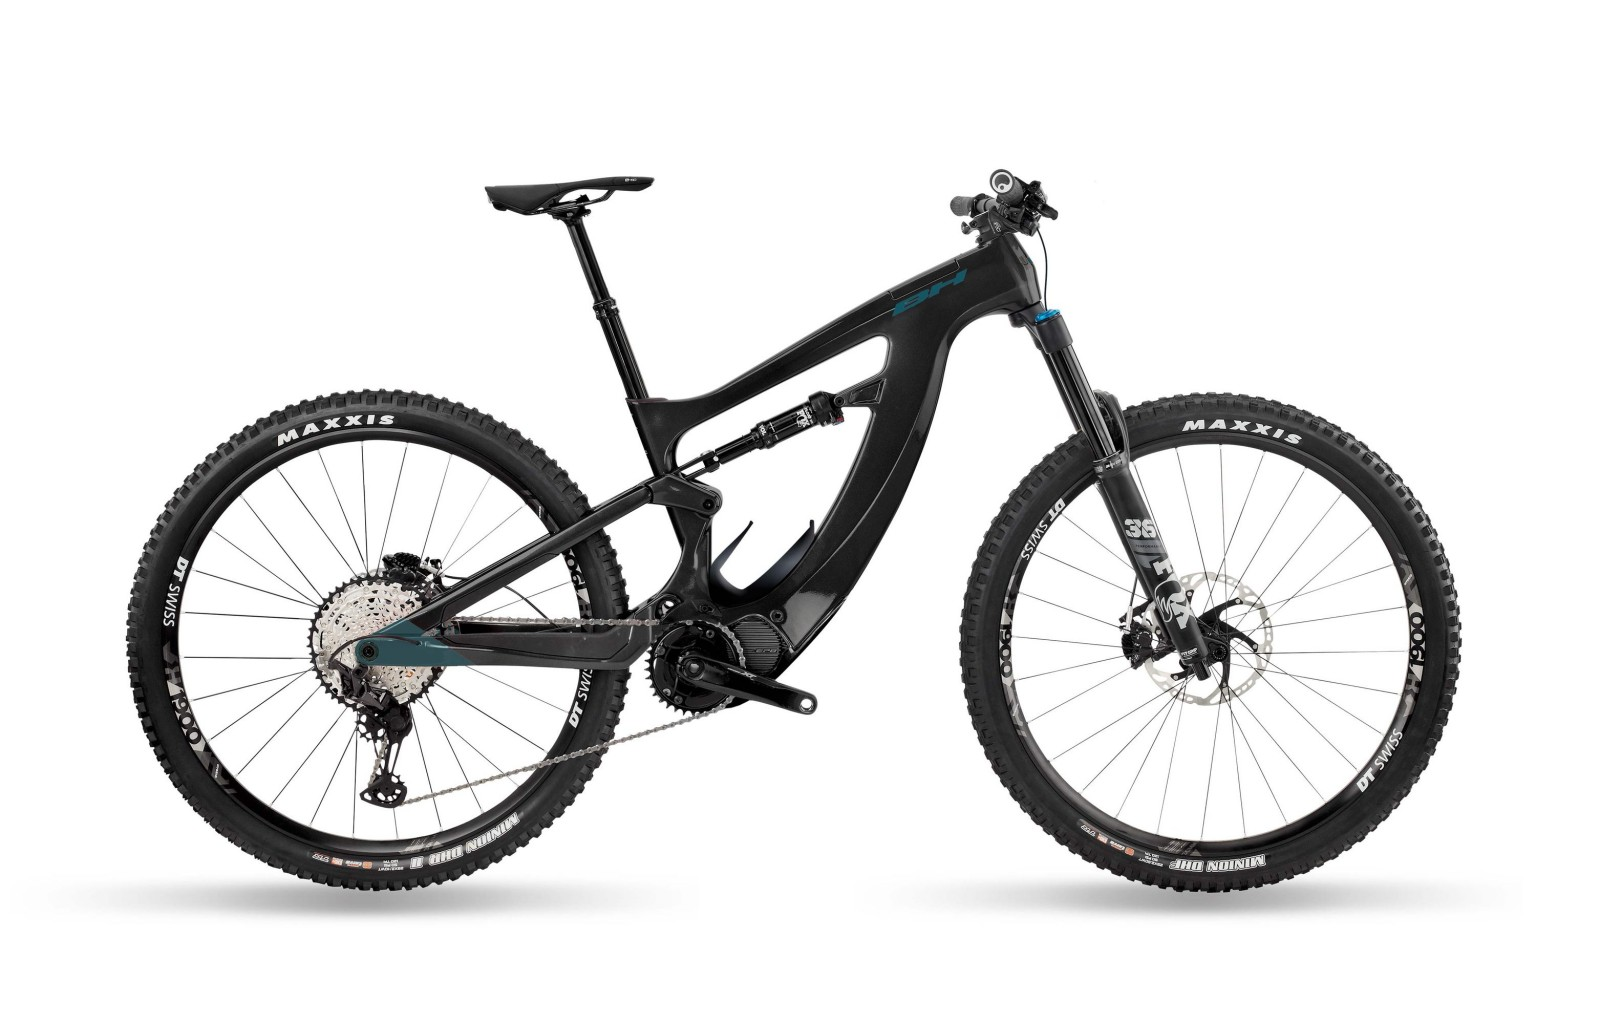 bh-xtep-carbon-2021/